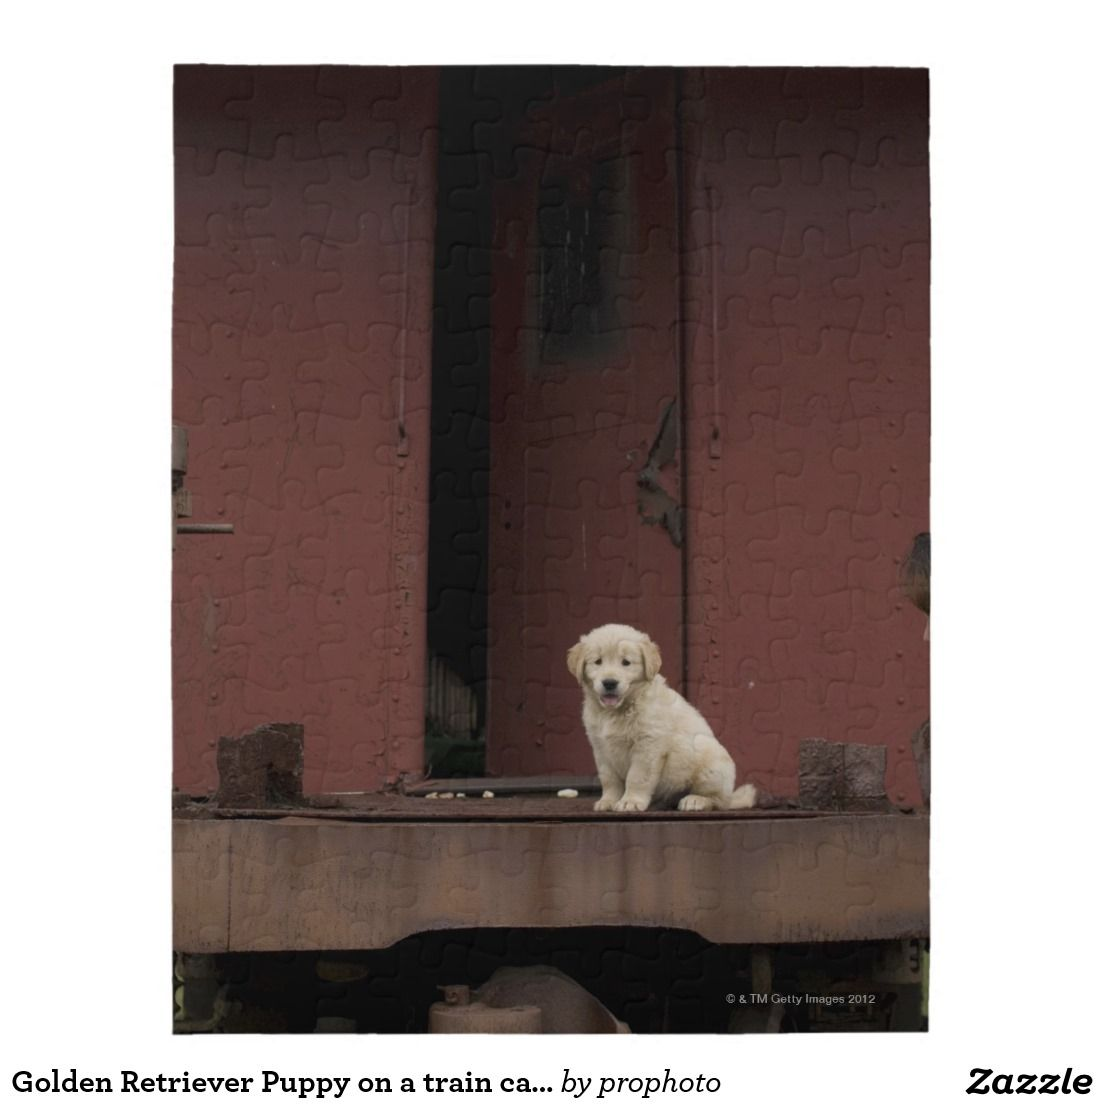 Golden retriever puppy on a train caboose jigsaw puzzle